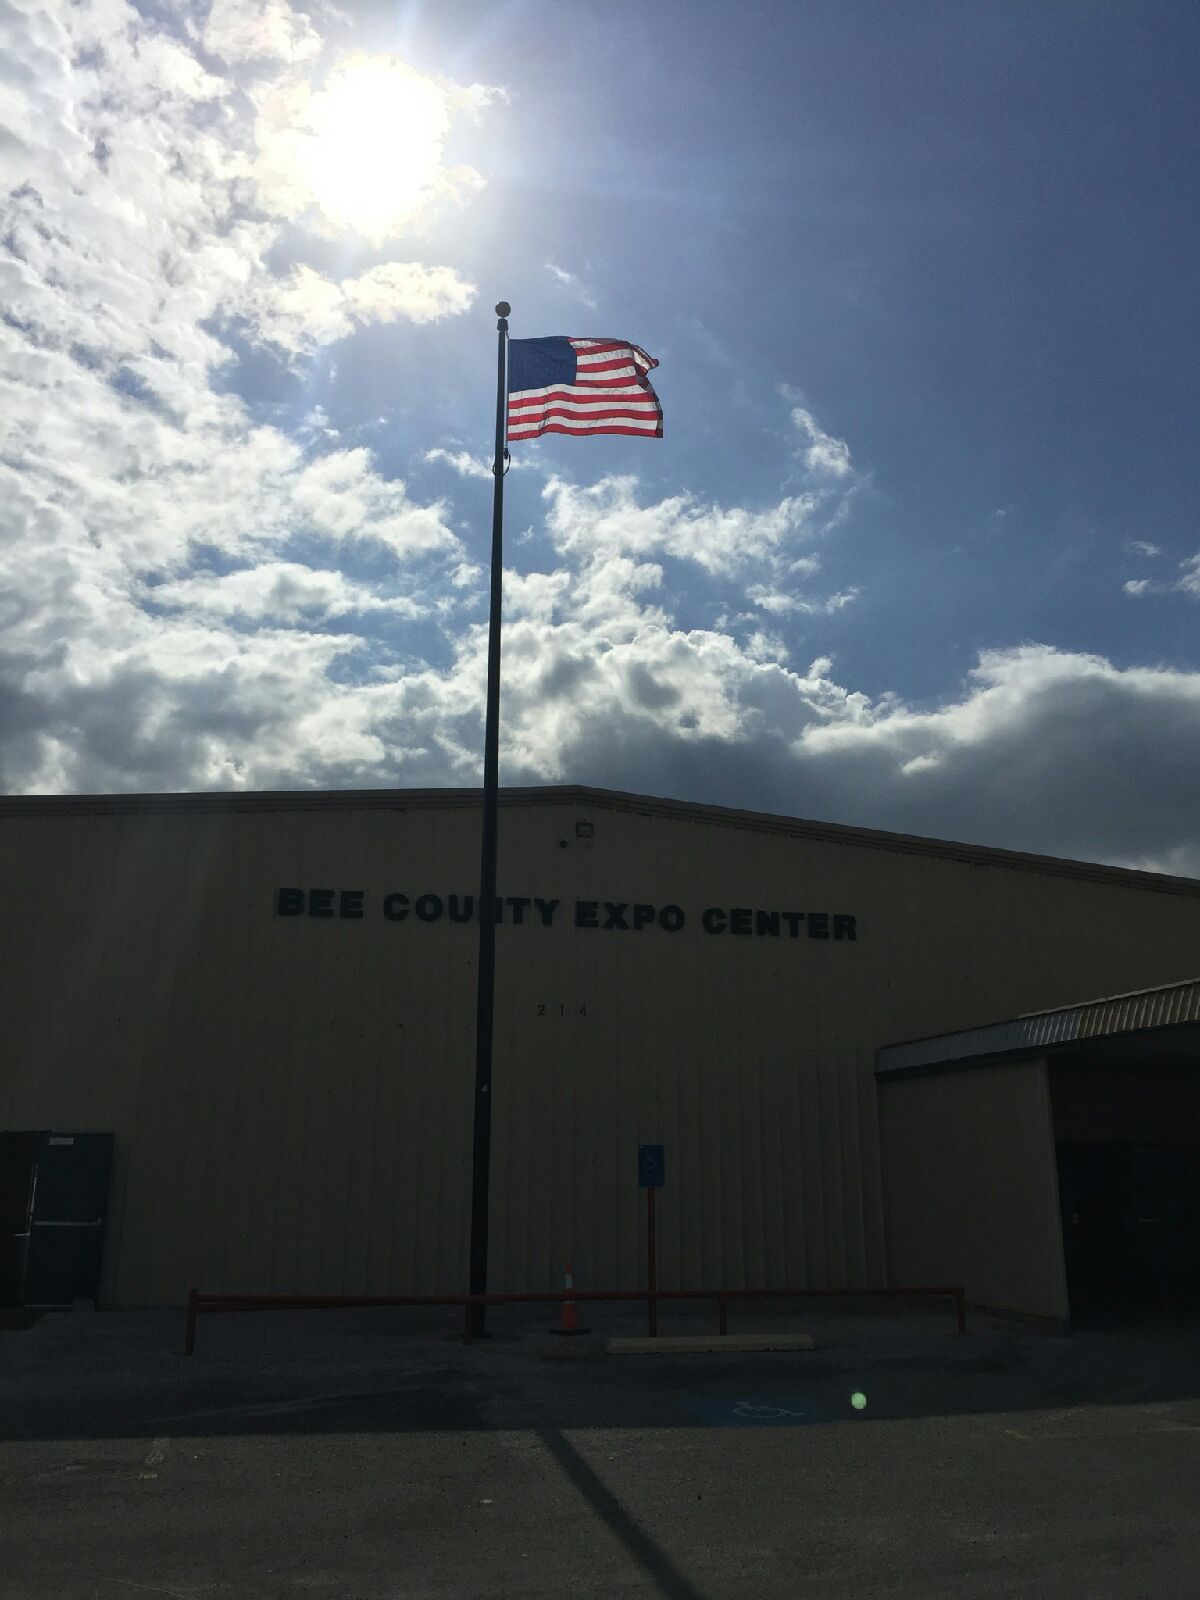 Bee county expo center